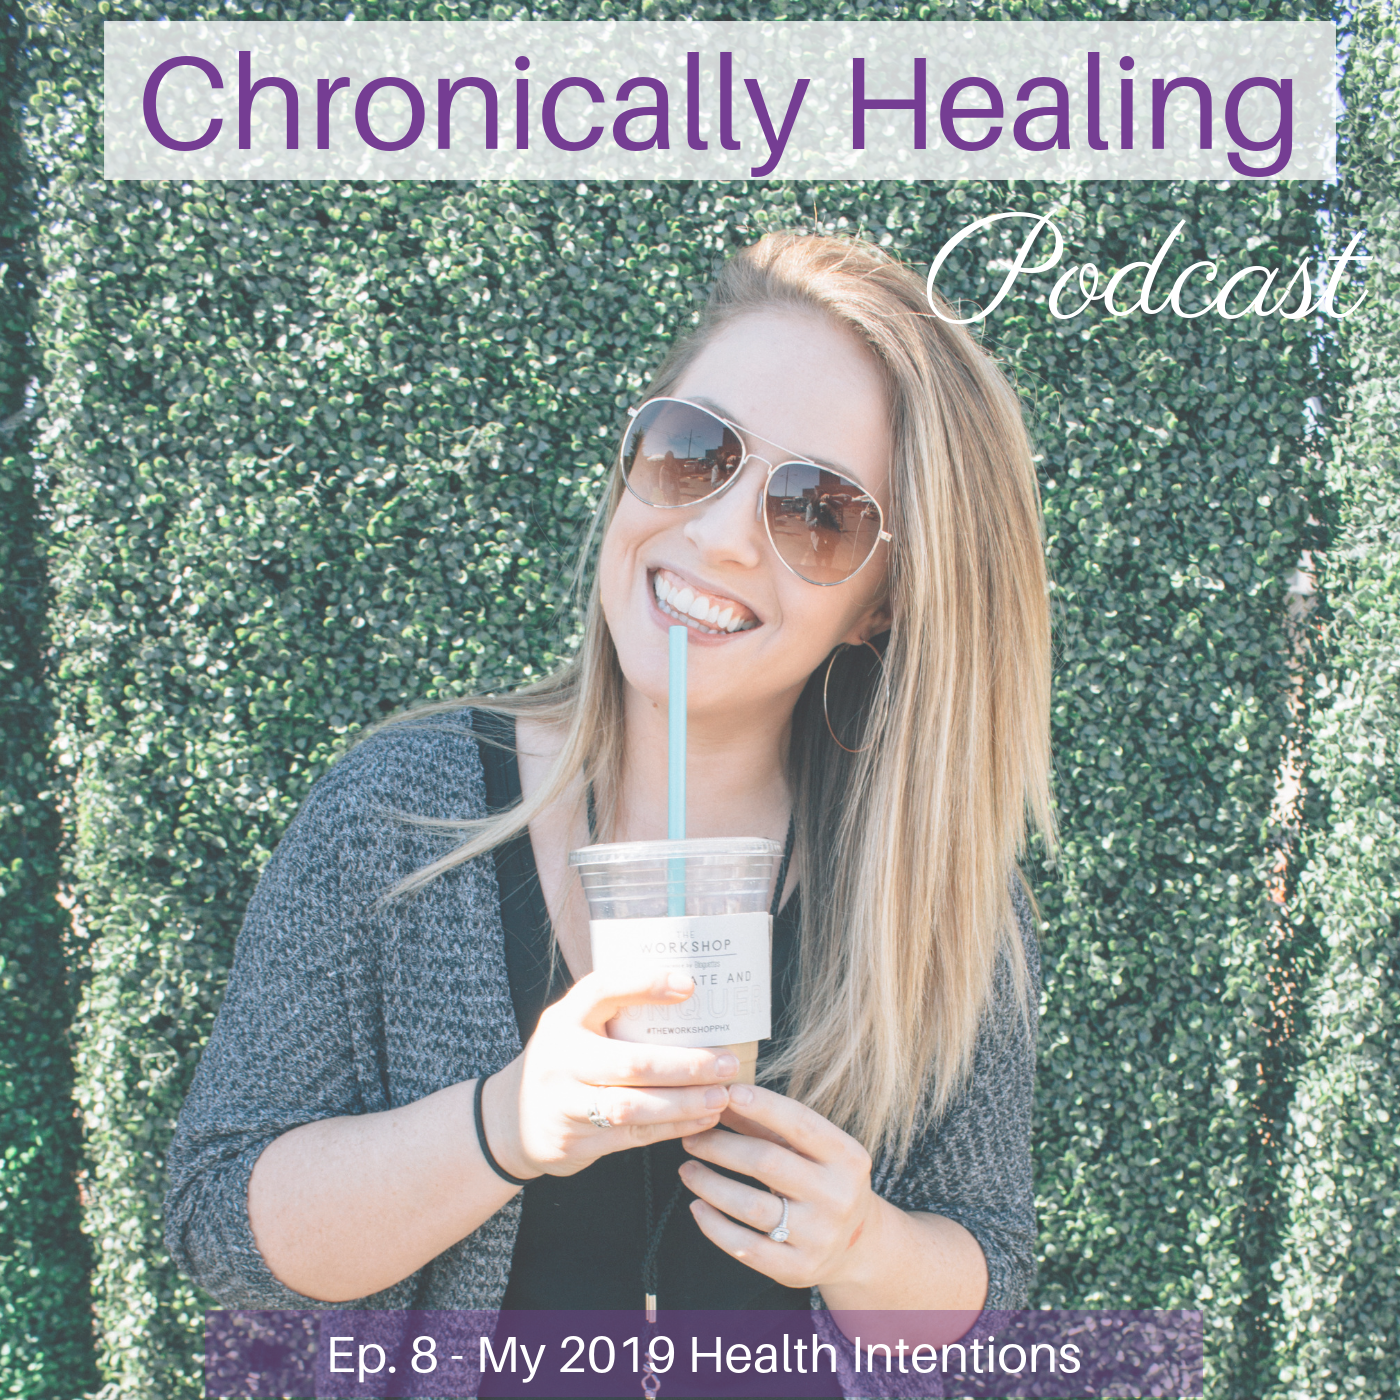 Chronically Healing Podcast Ep. 8 – My 2019 Health Goals & Intentions